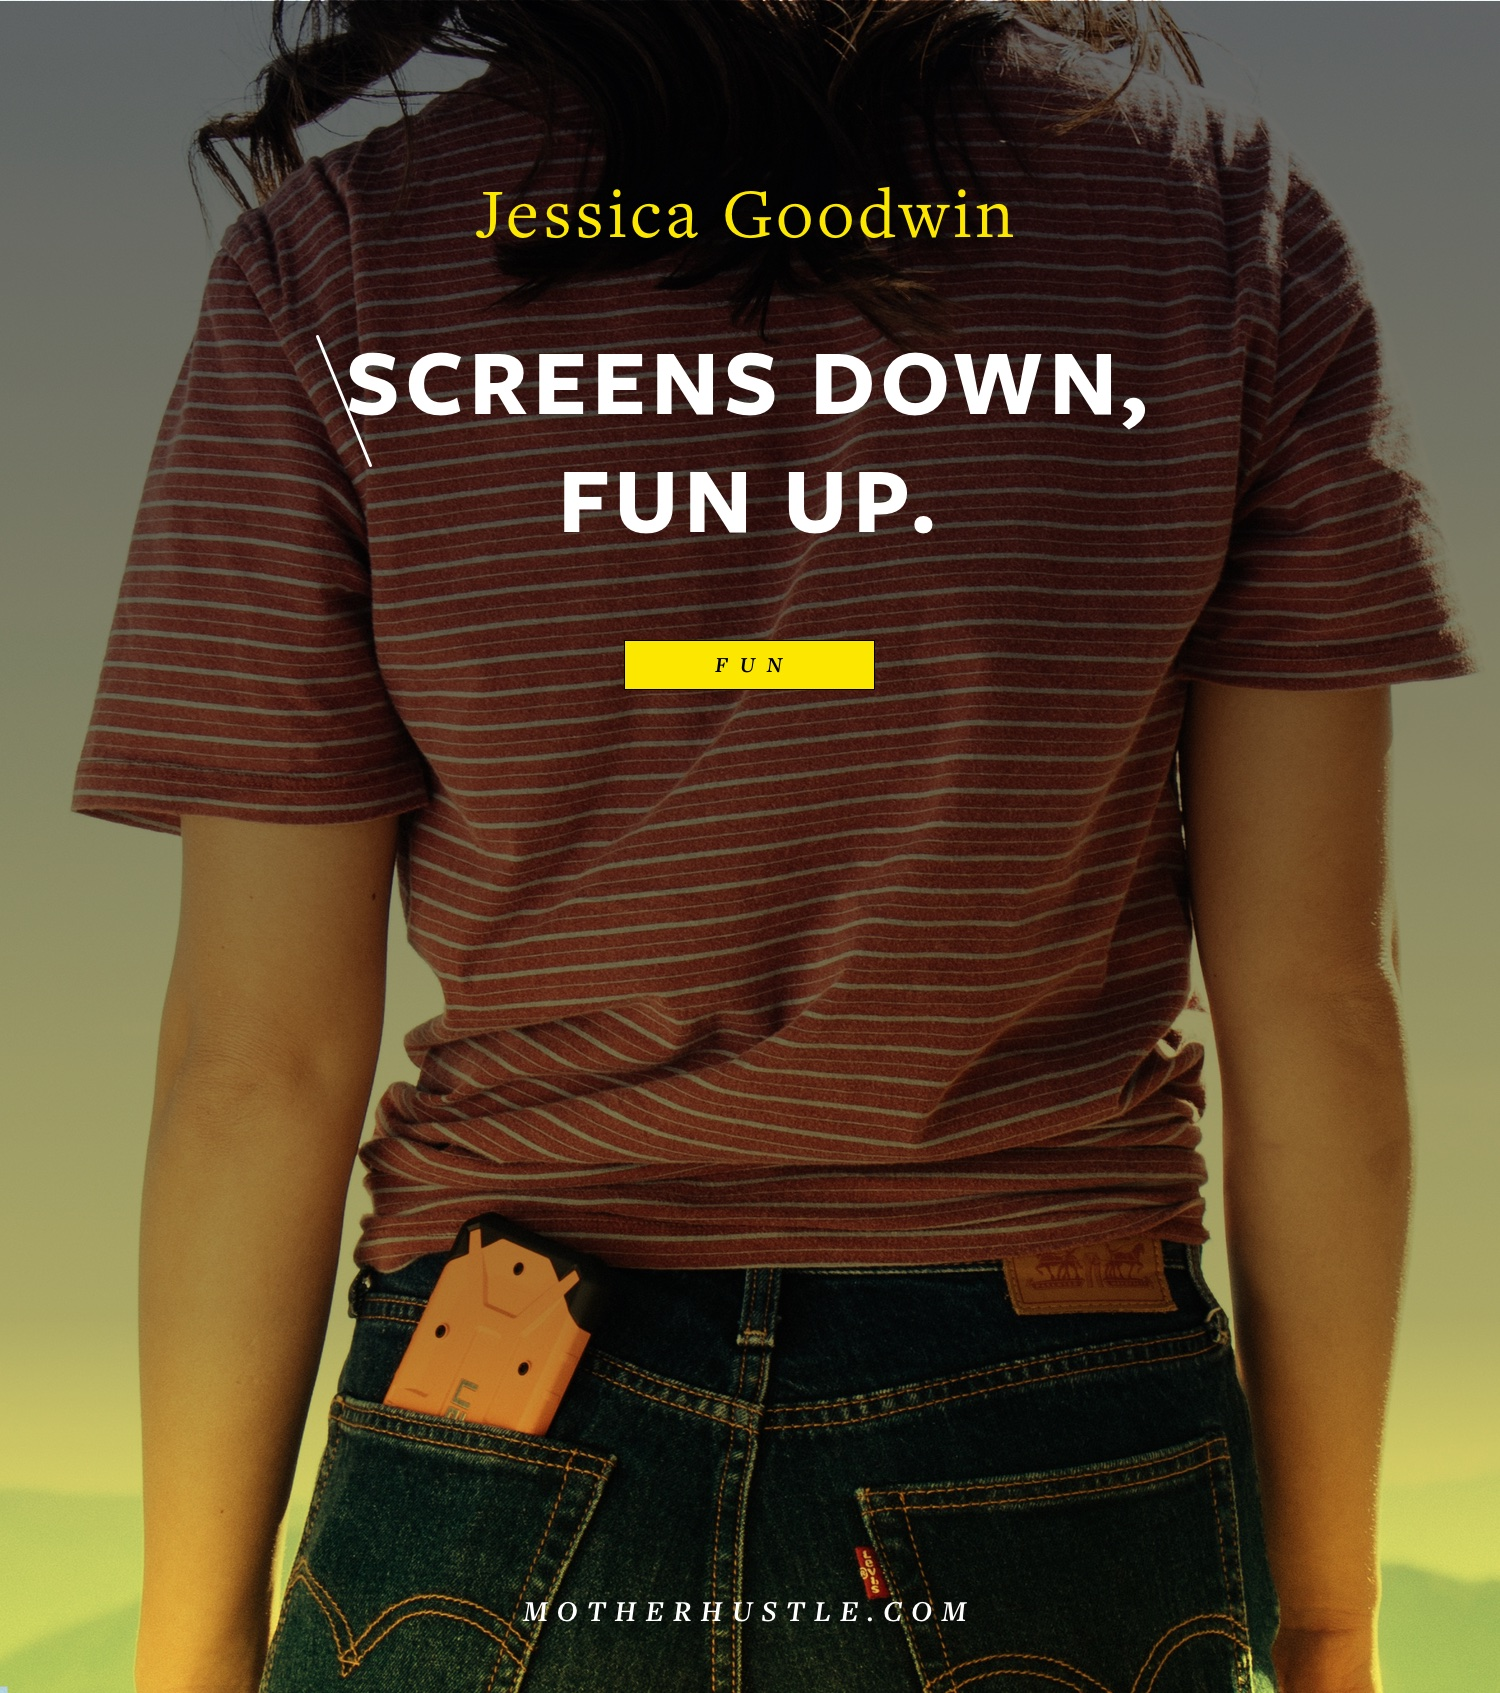 Screens Down, Fun Up. - by Jessica Goodwin for MotherHustle